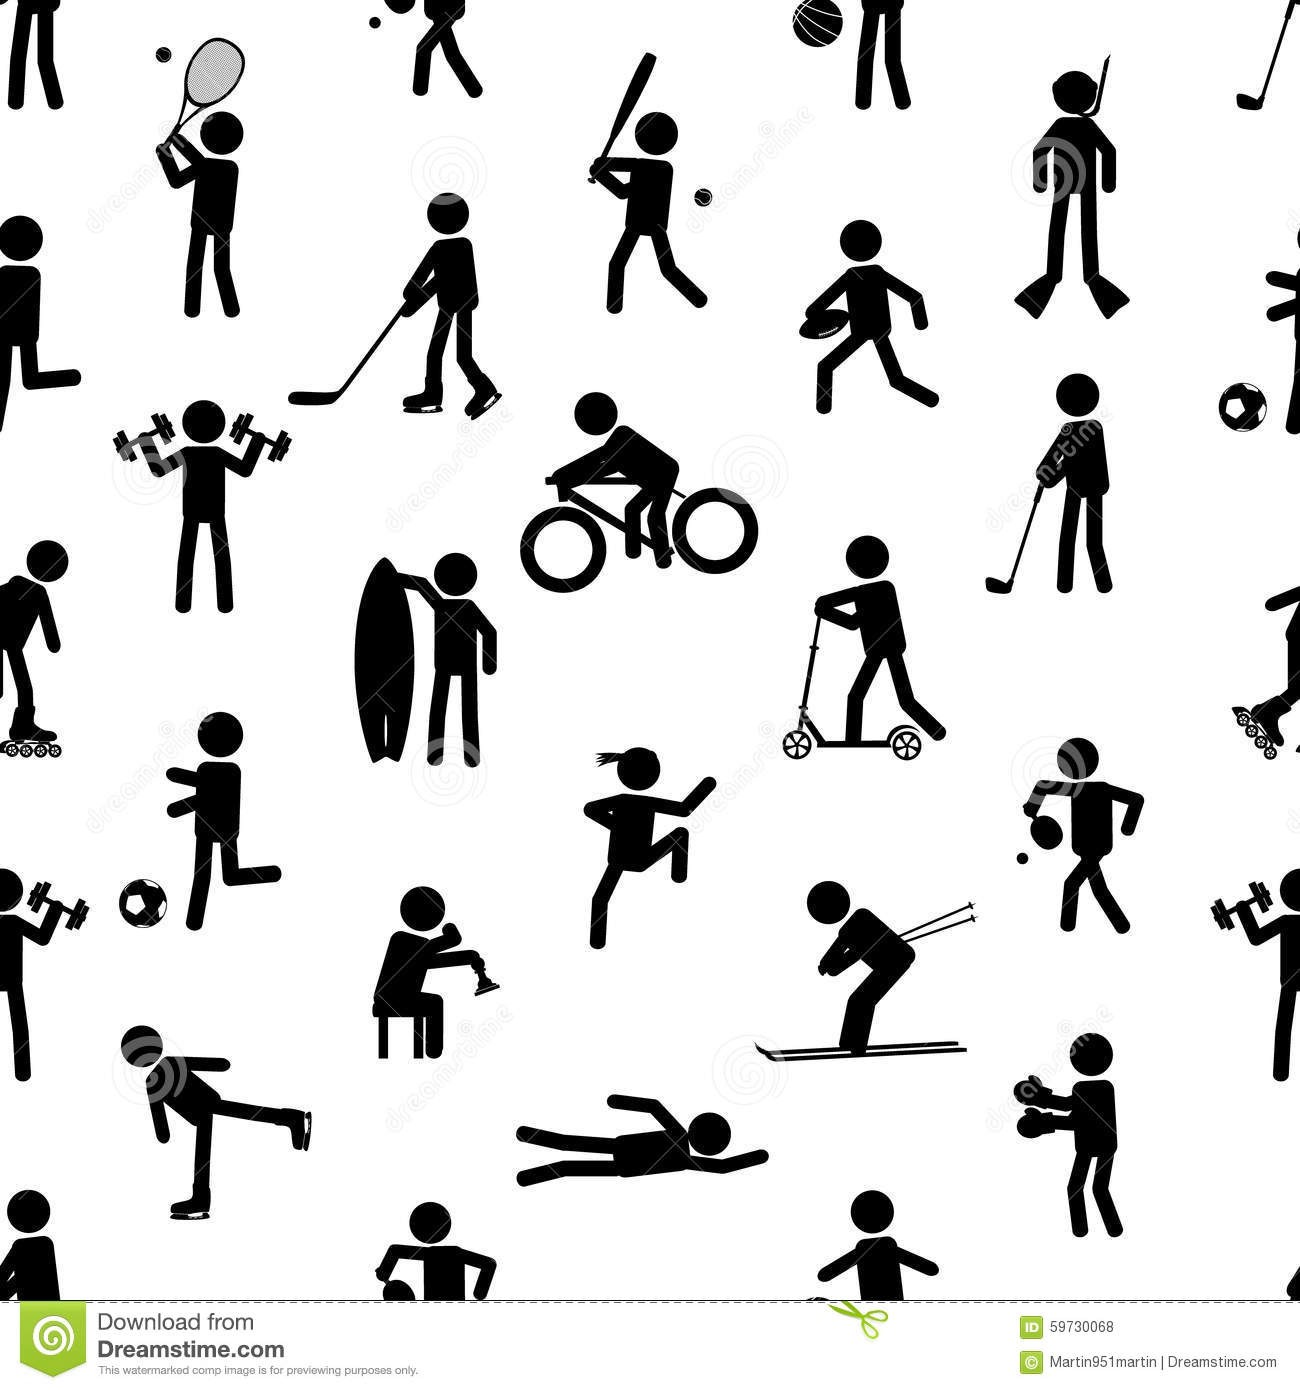 Sport Silhouettes Black Simple Icons Stock Vector